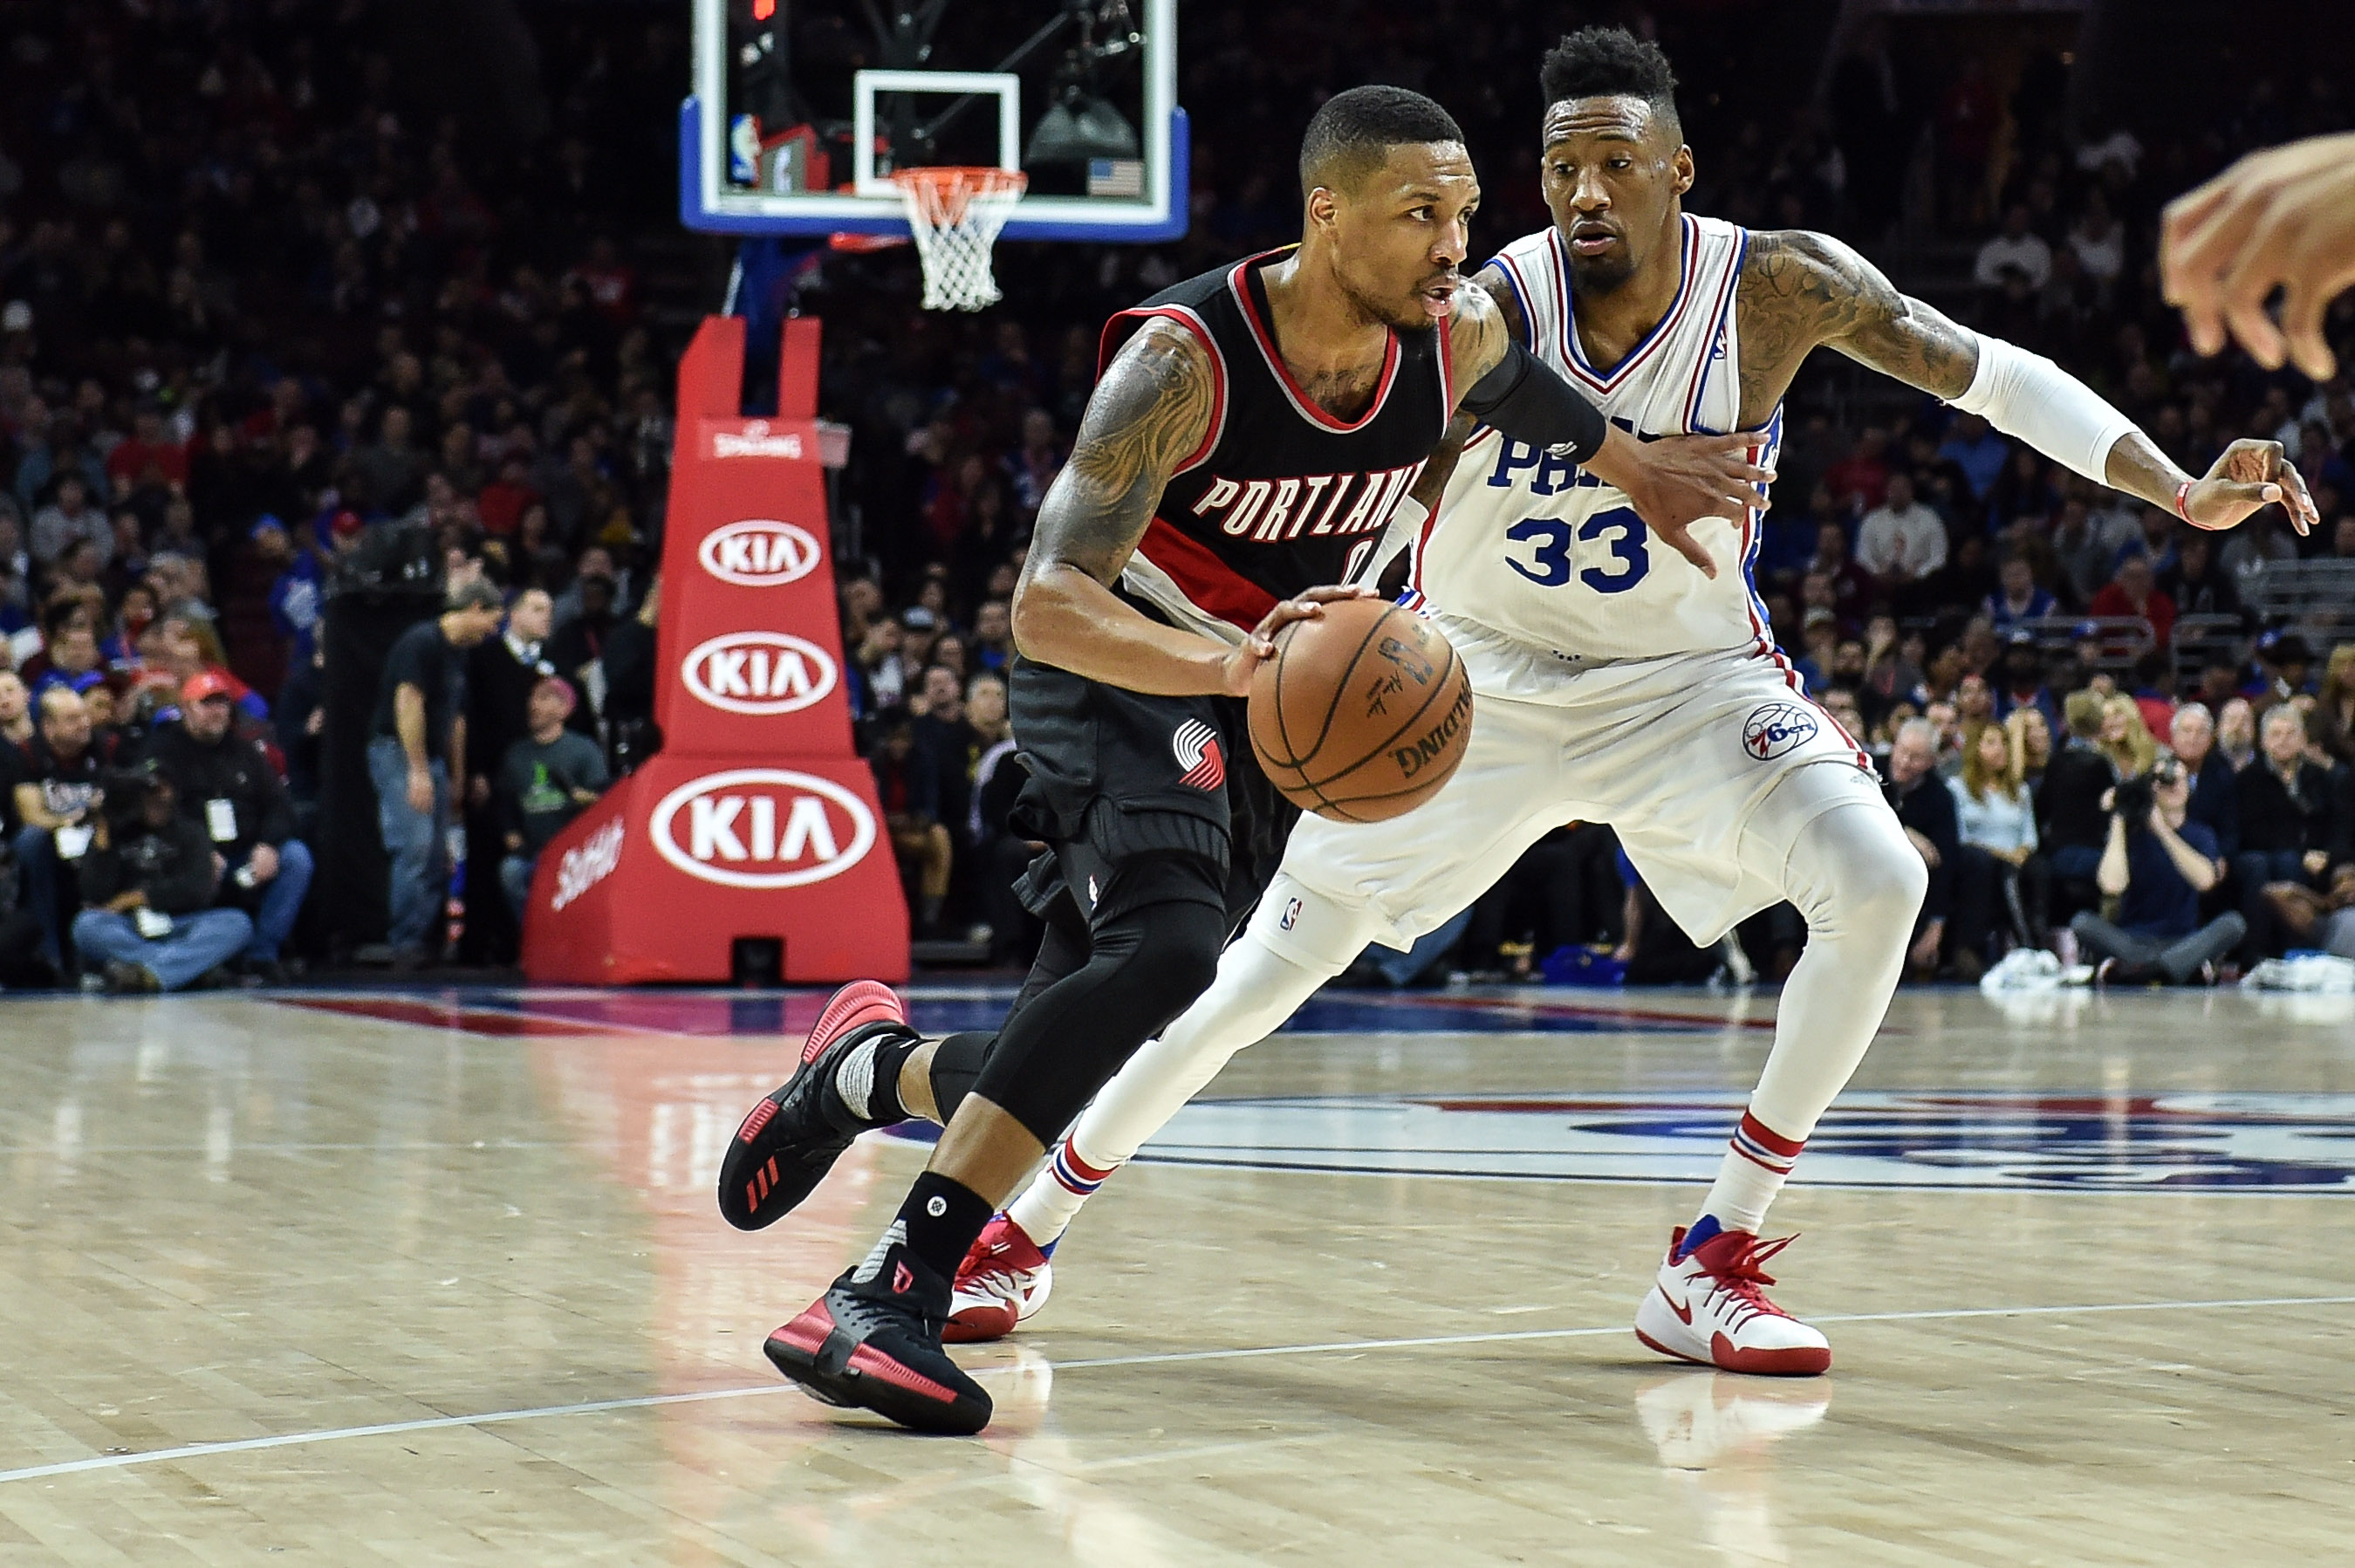 9826127-nba-portland-trail-blazers-at-philadelphia-76ers